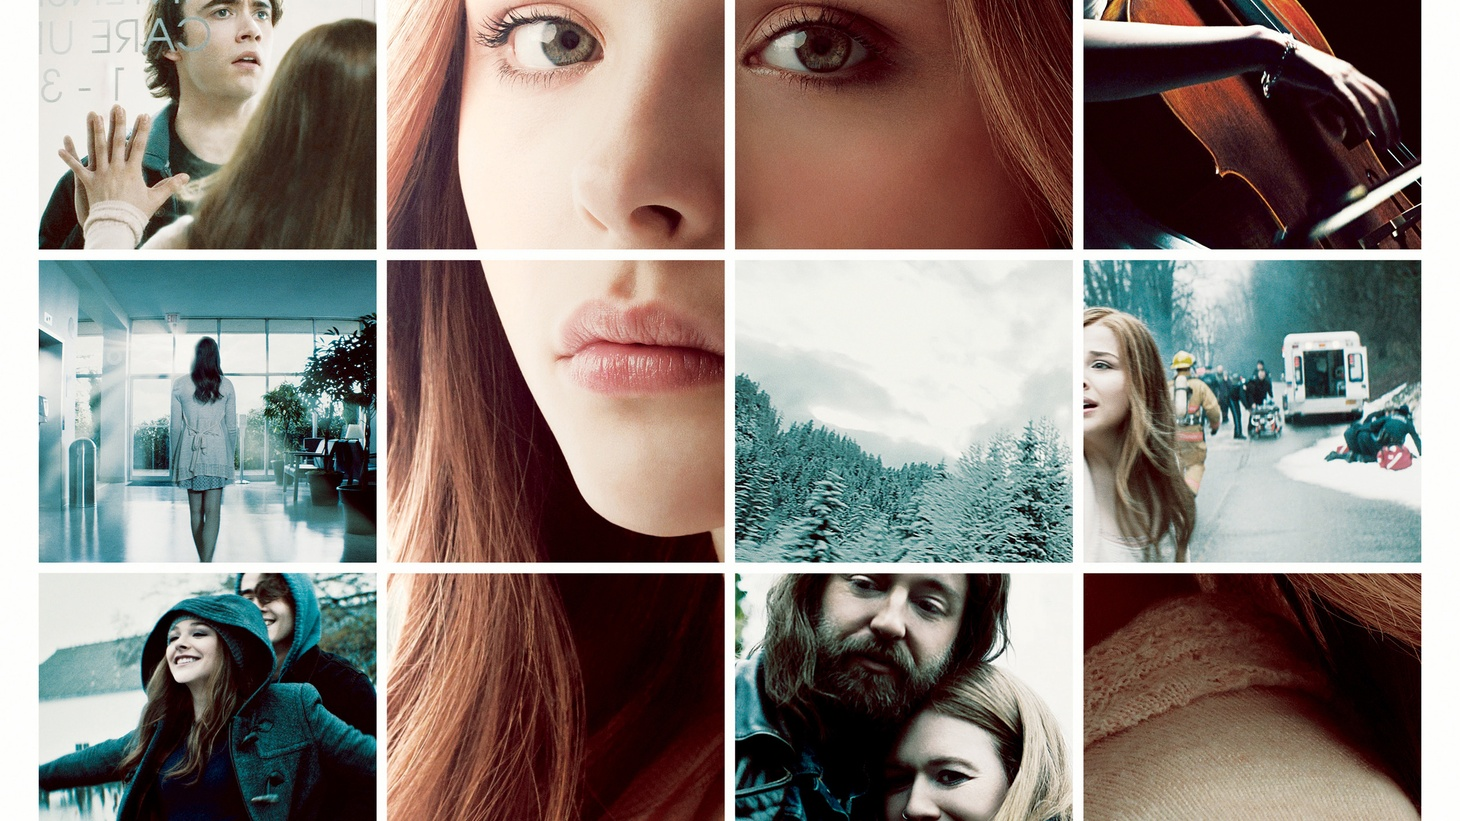 Joe Morgenstern reviews the new Chloe Grace Moretz film If I Stay, and the new comedy The Trip to Italy from Steve Coogan and Rob Brydon.